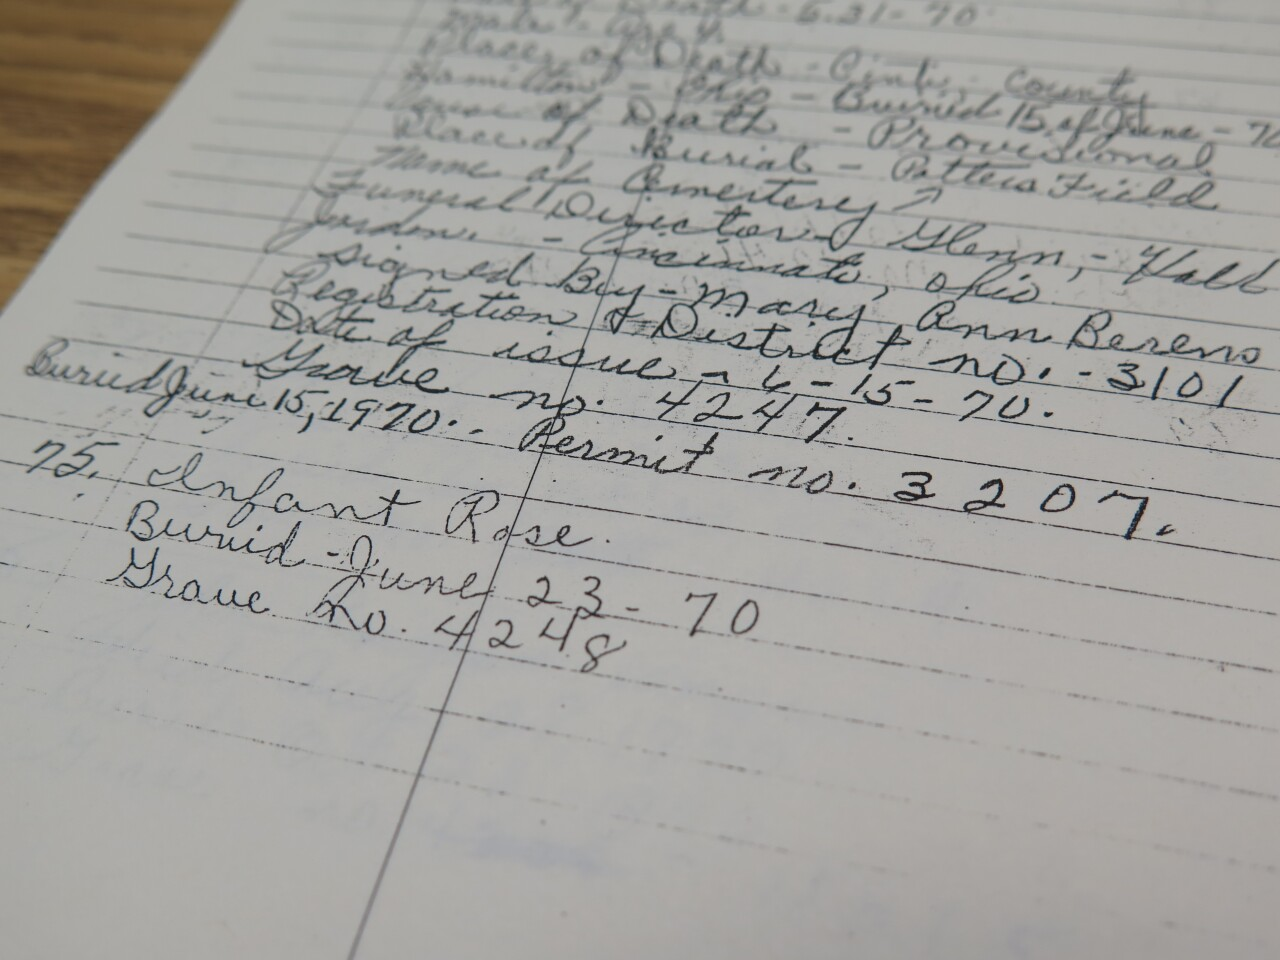 This photo shows a copy of a handwritten burial record for Potter's Field. The deceased person is listed as Infant Rose and was buried June 23, 1970 in grave number 4248.